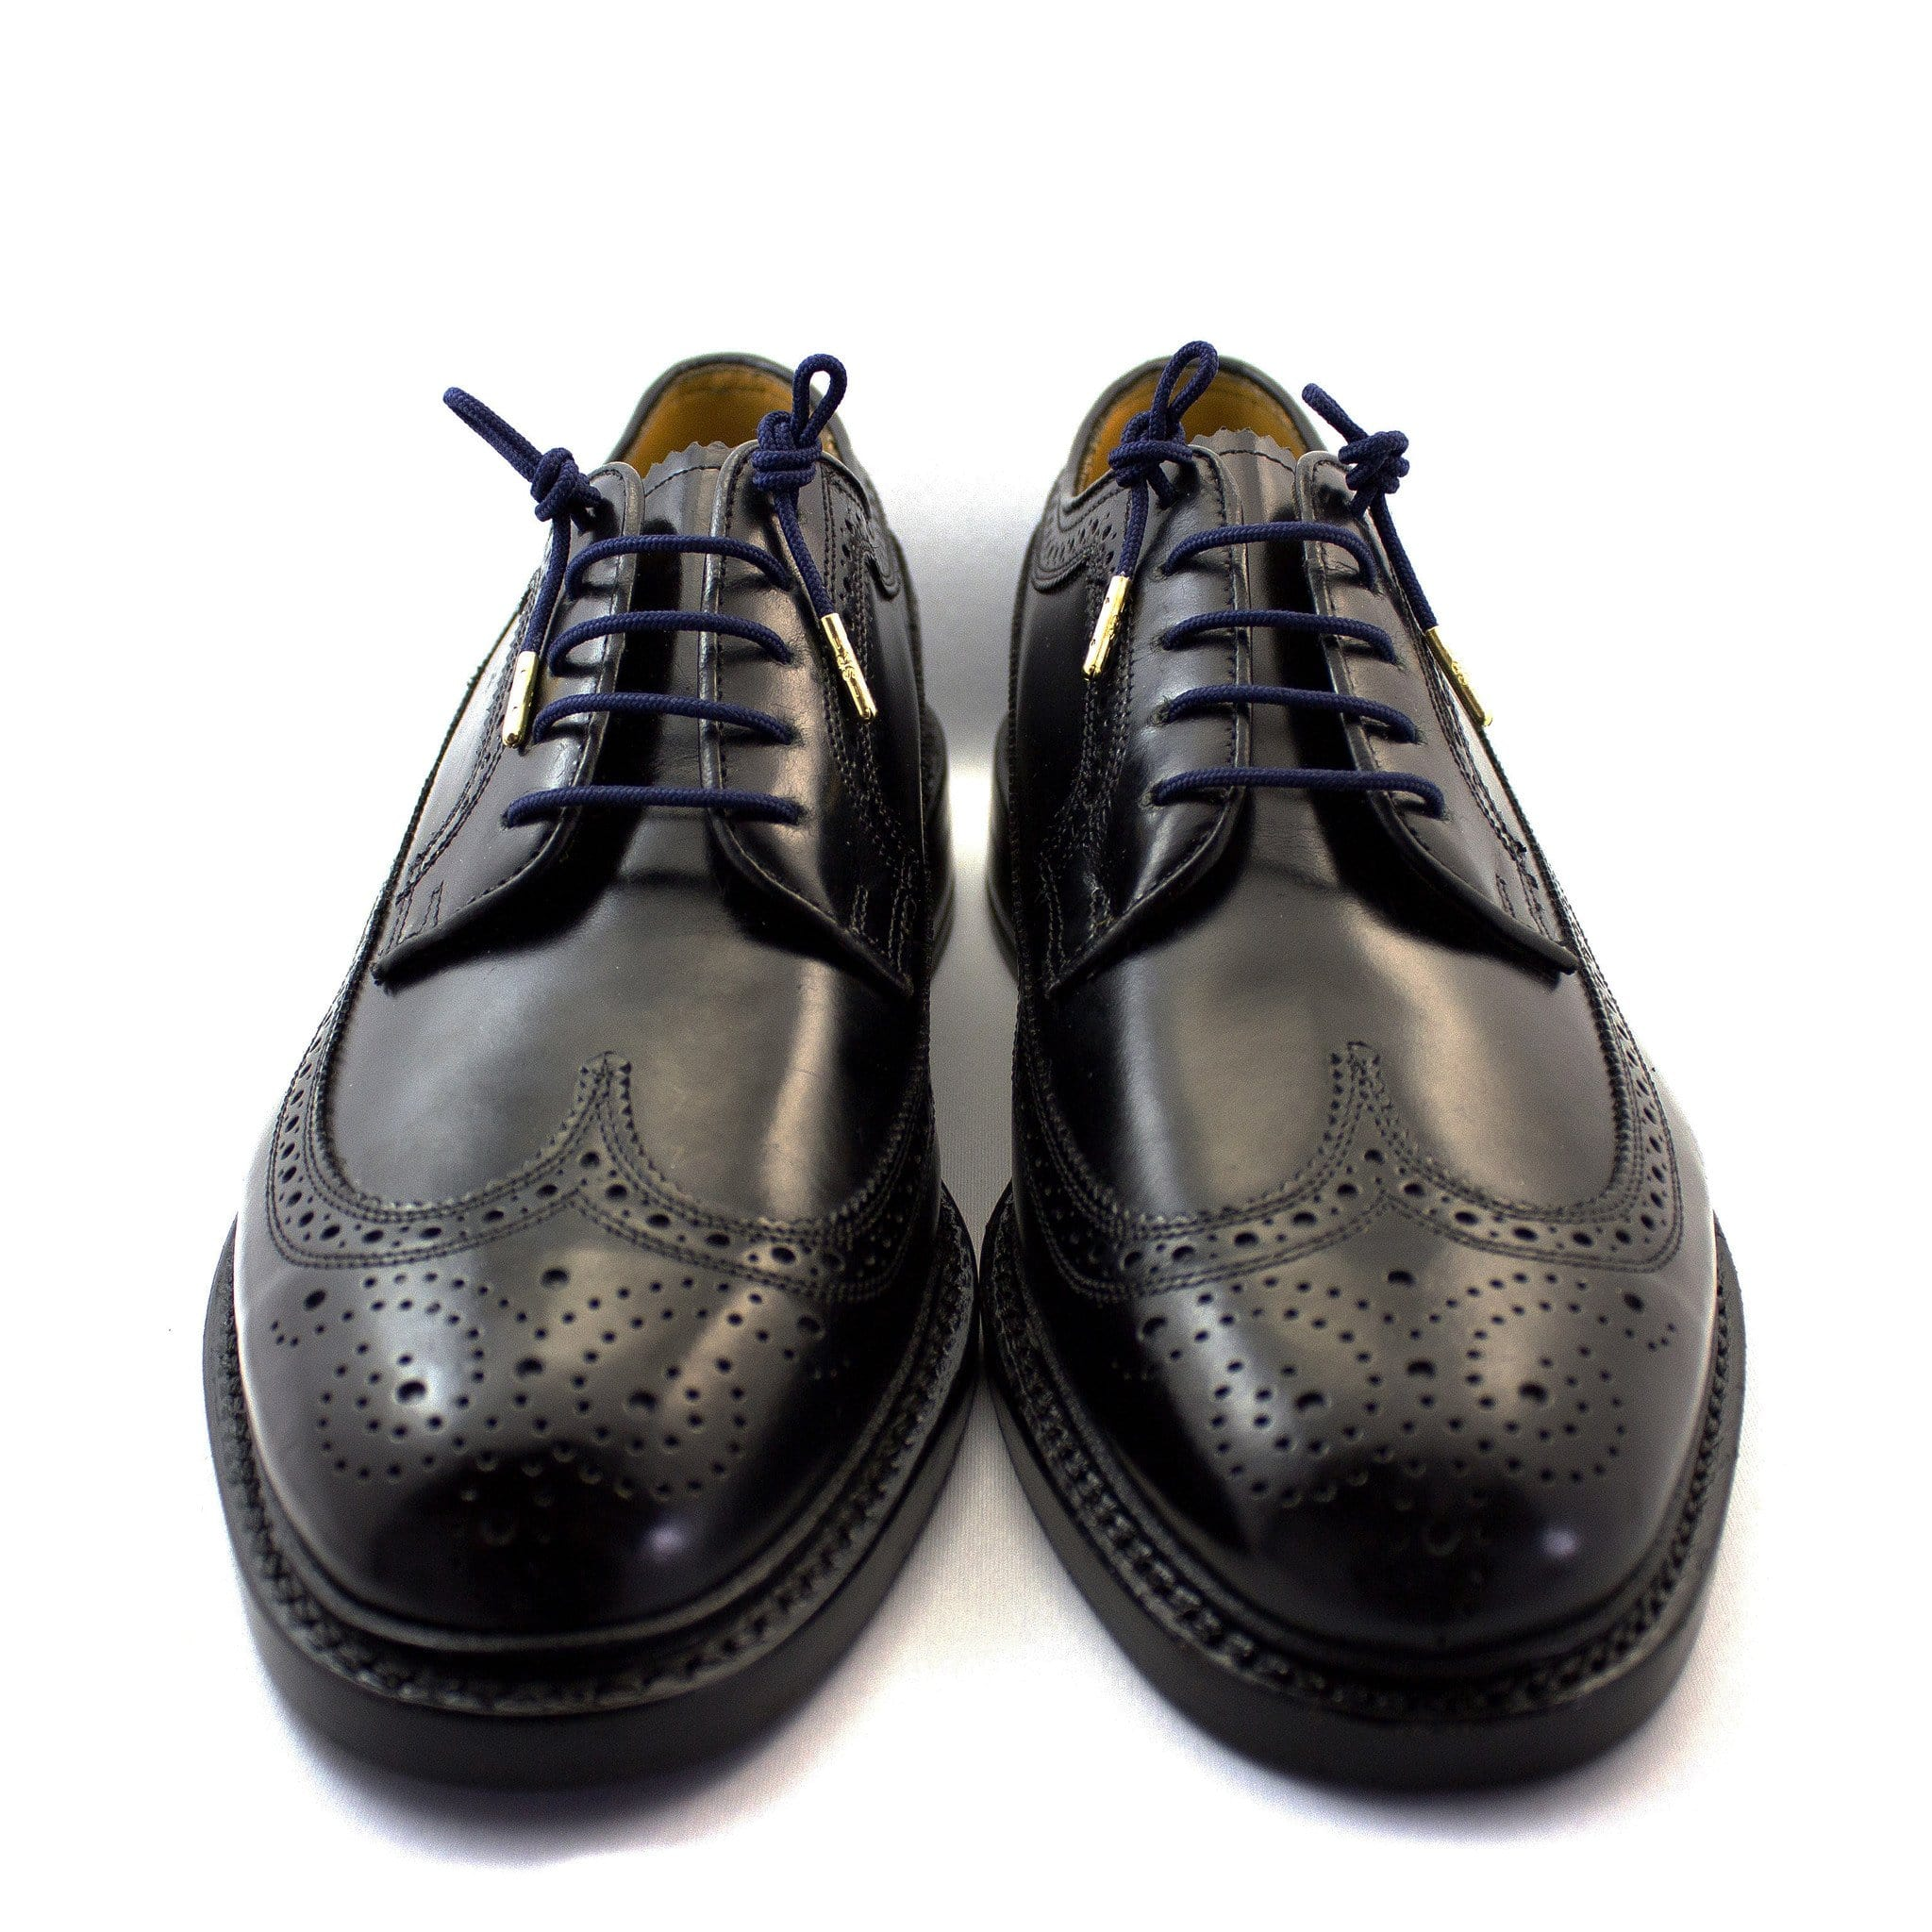 "Navy blue laces for dress shoes, Length: 32""/81cm-Stolen Riches"